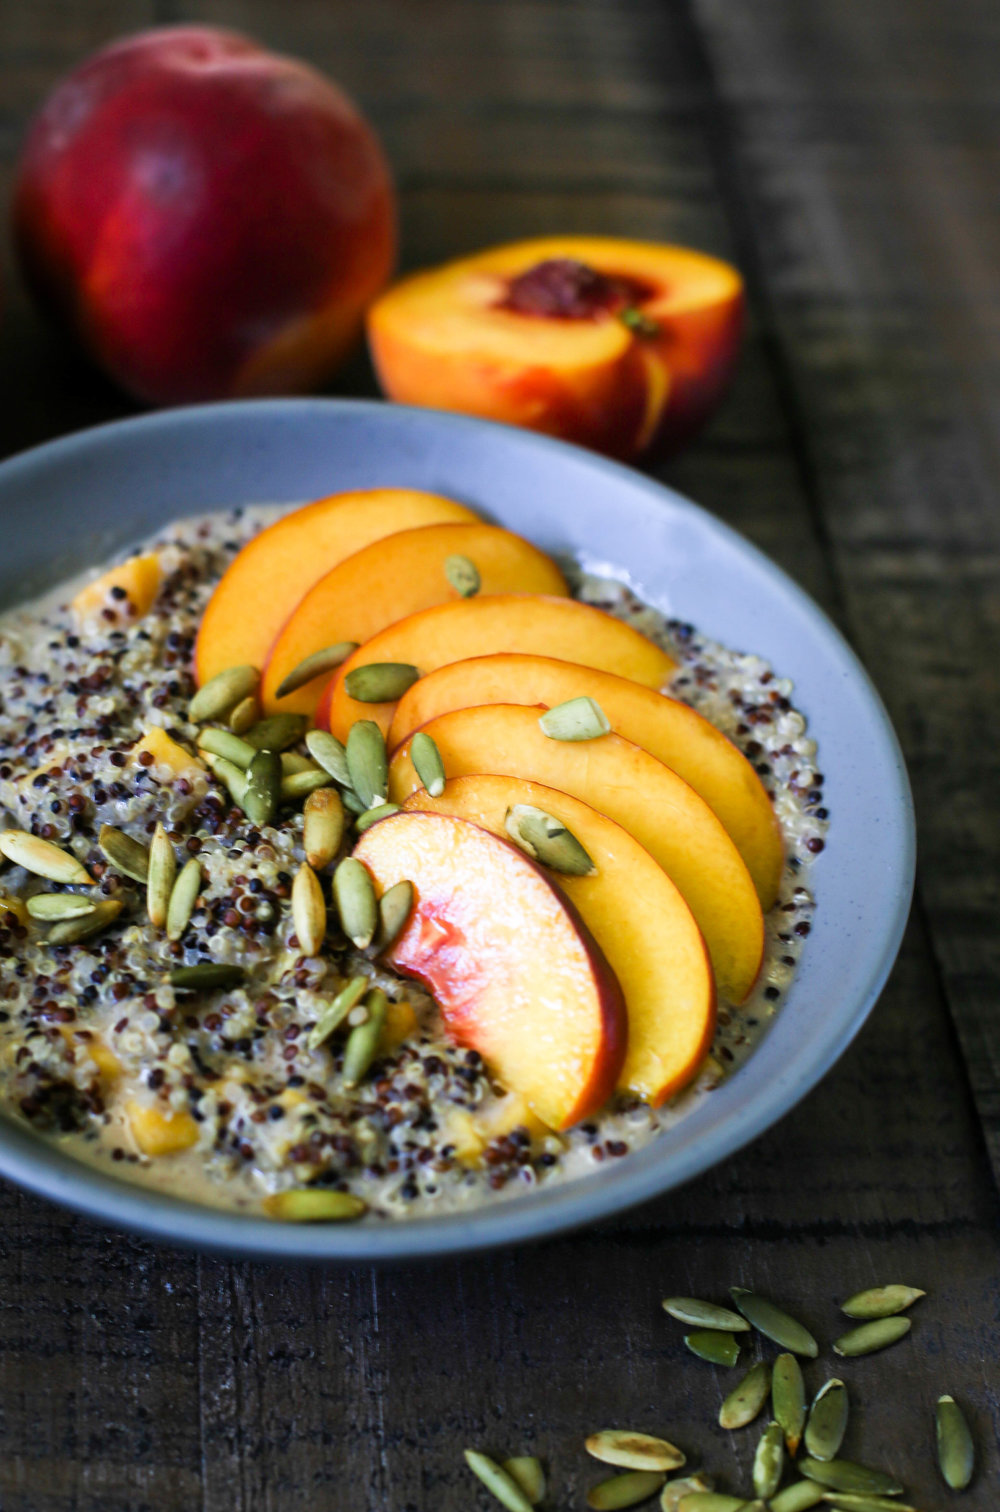 Spiced Peaches & Cream Quinoa Porridge